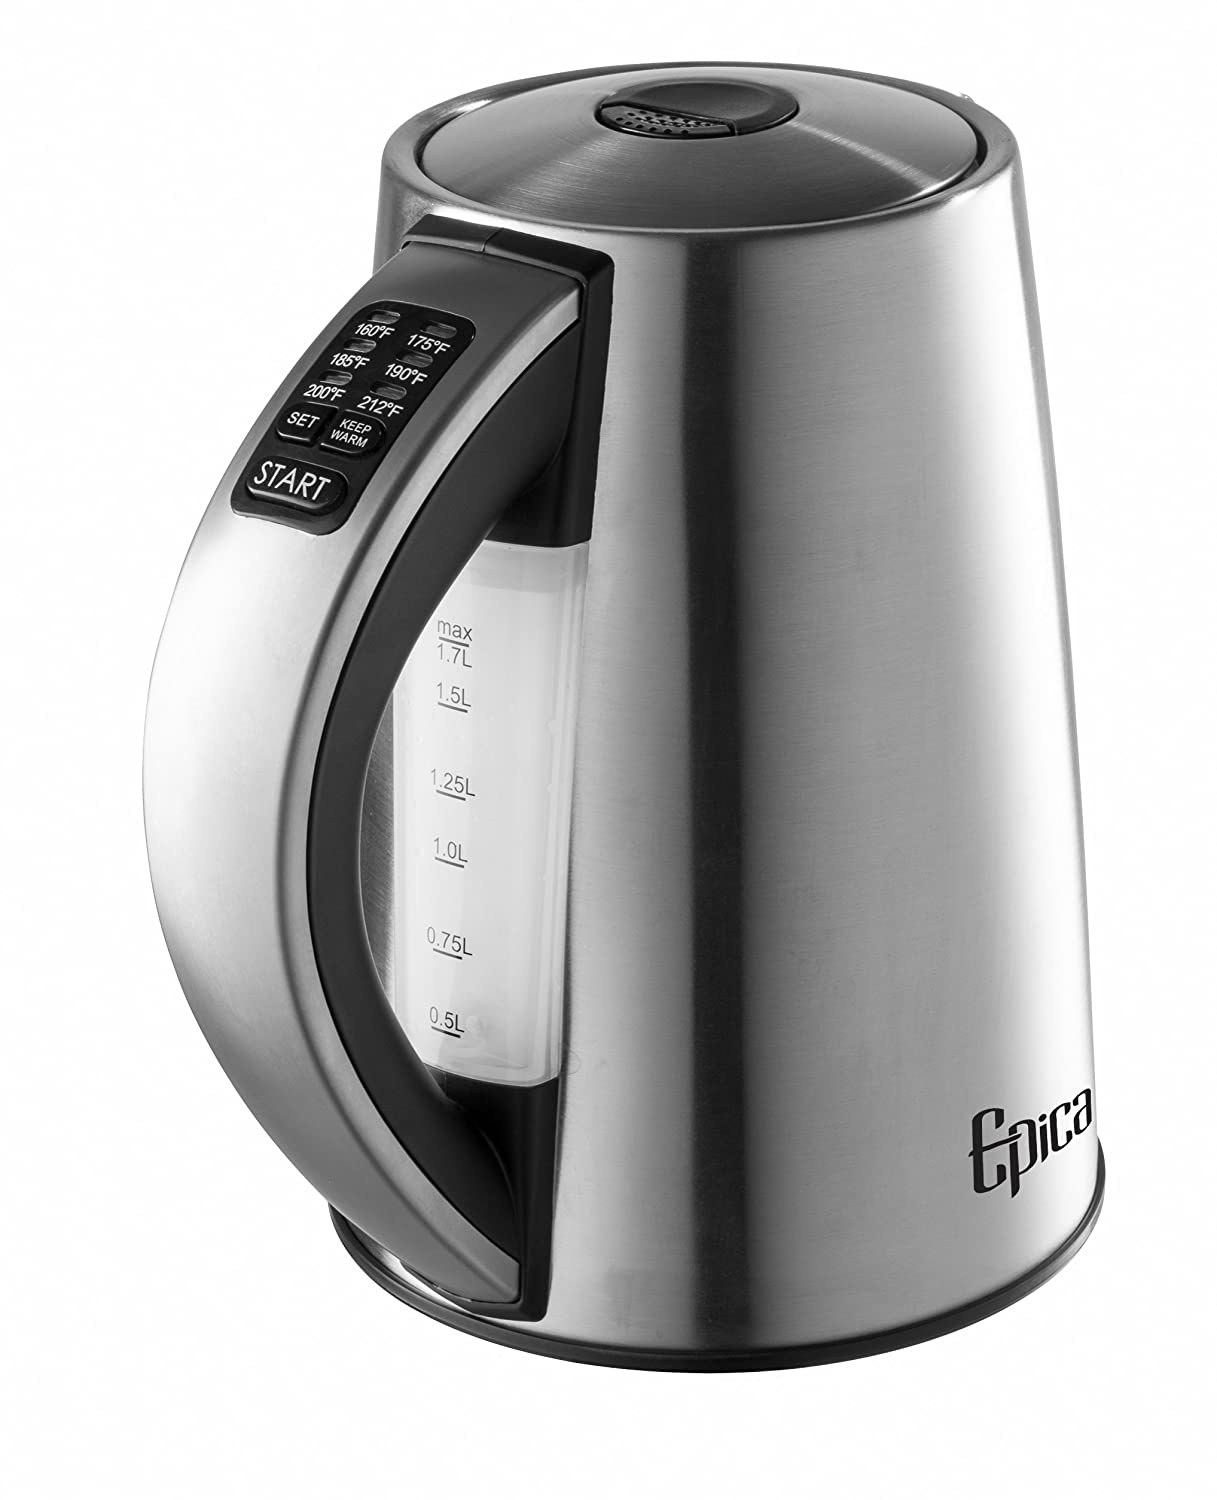 Best Electric Kettle 2020.Top 10 Best Cordless Electric Kettles Buying Guide 2019 2020